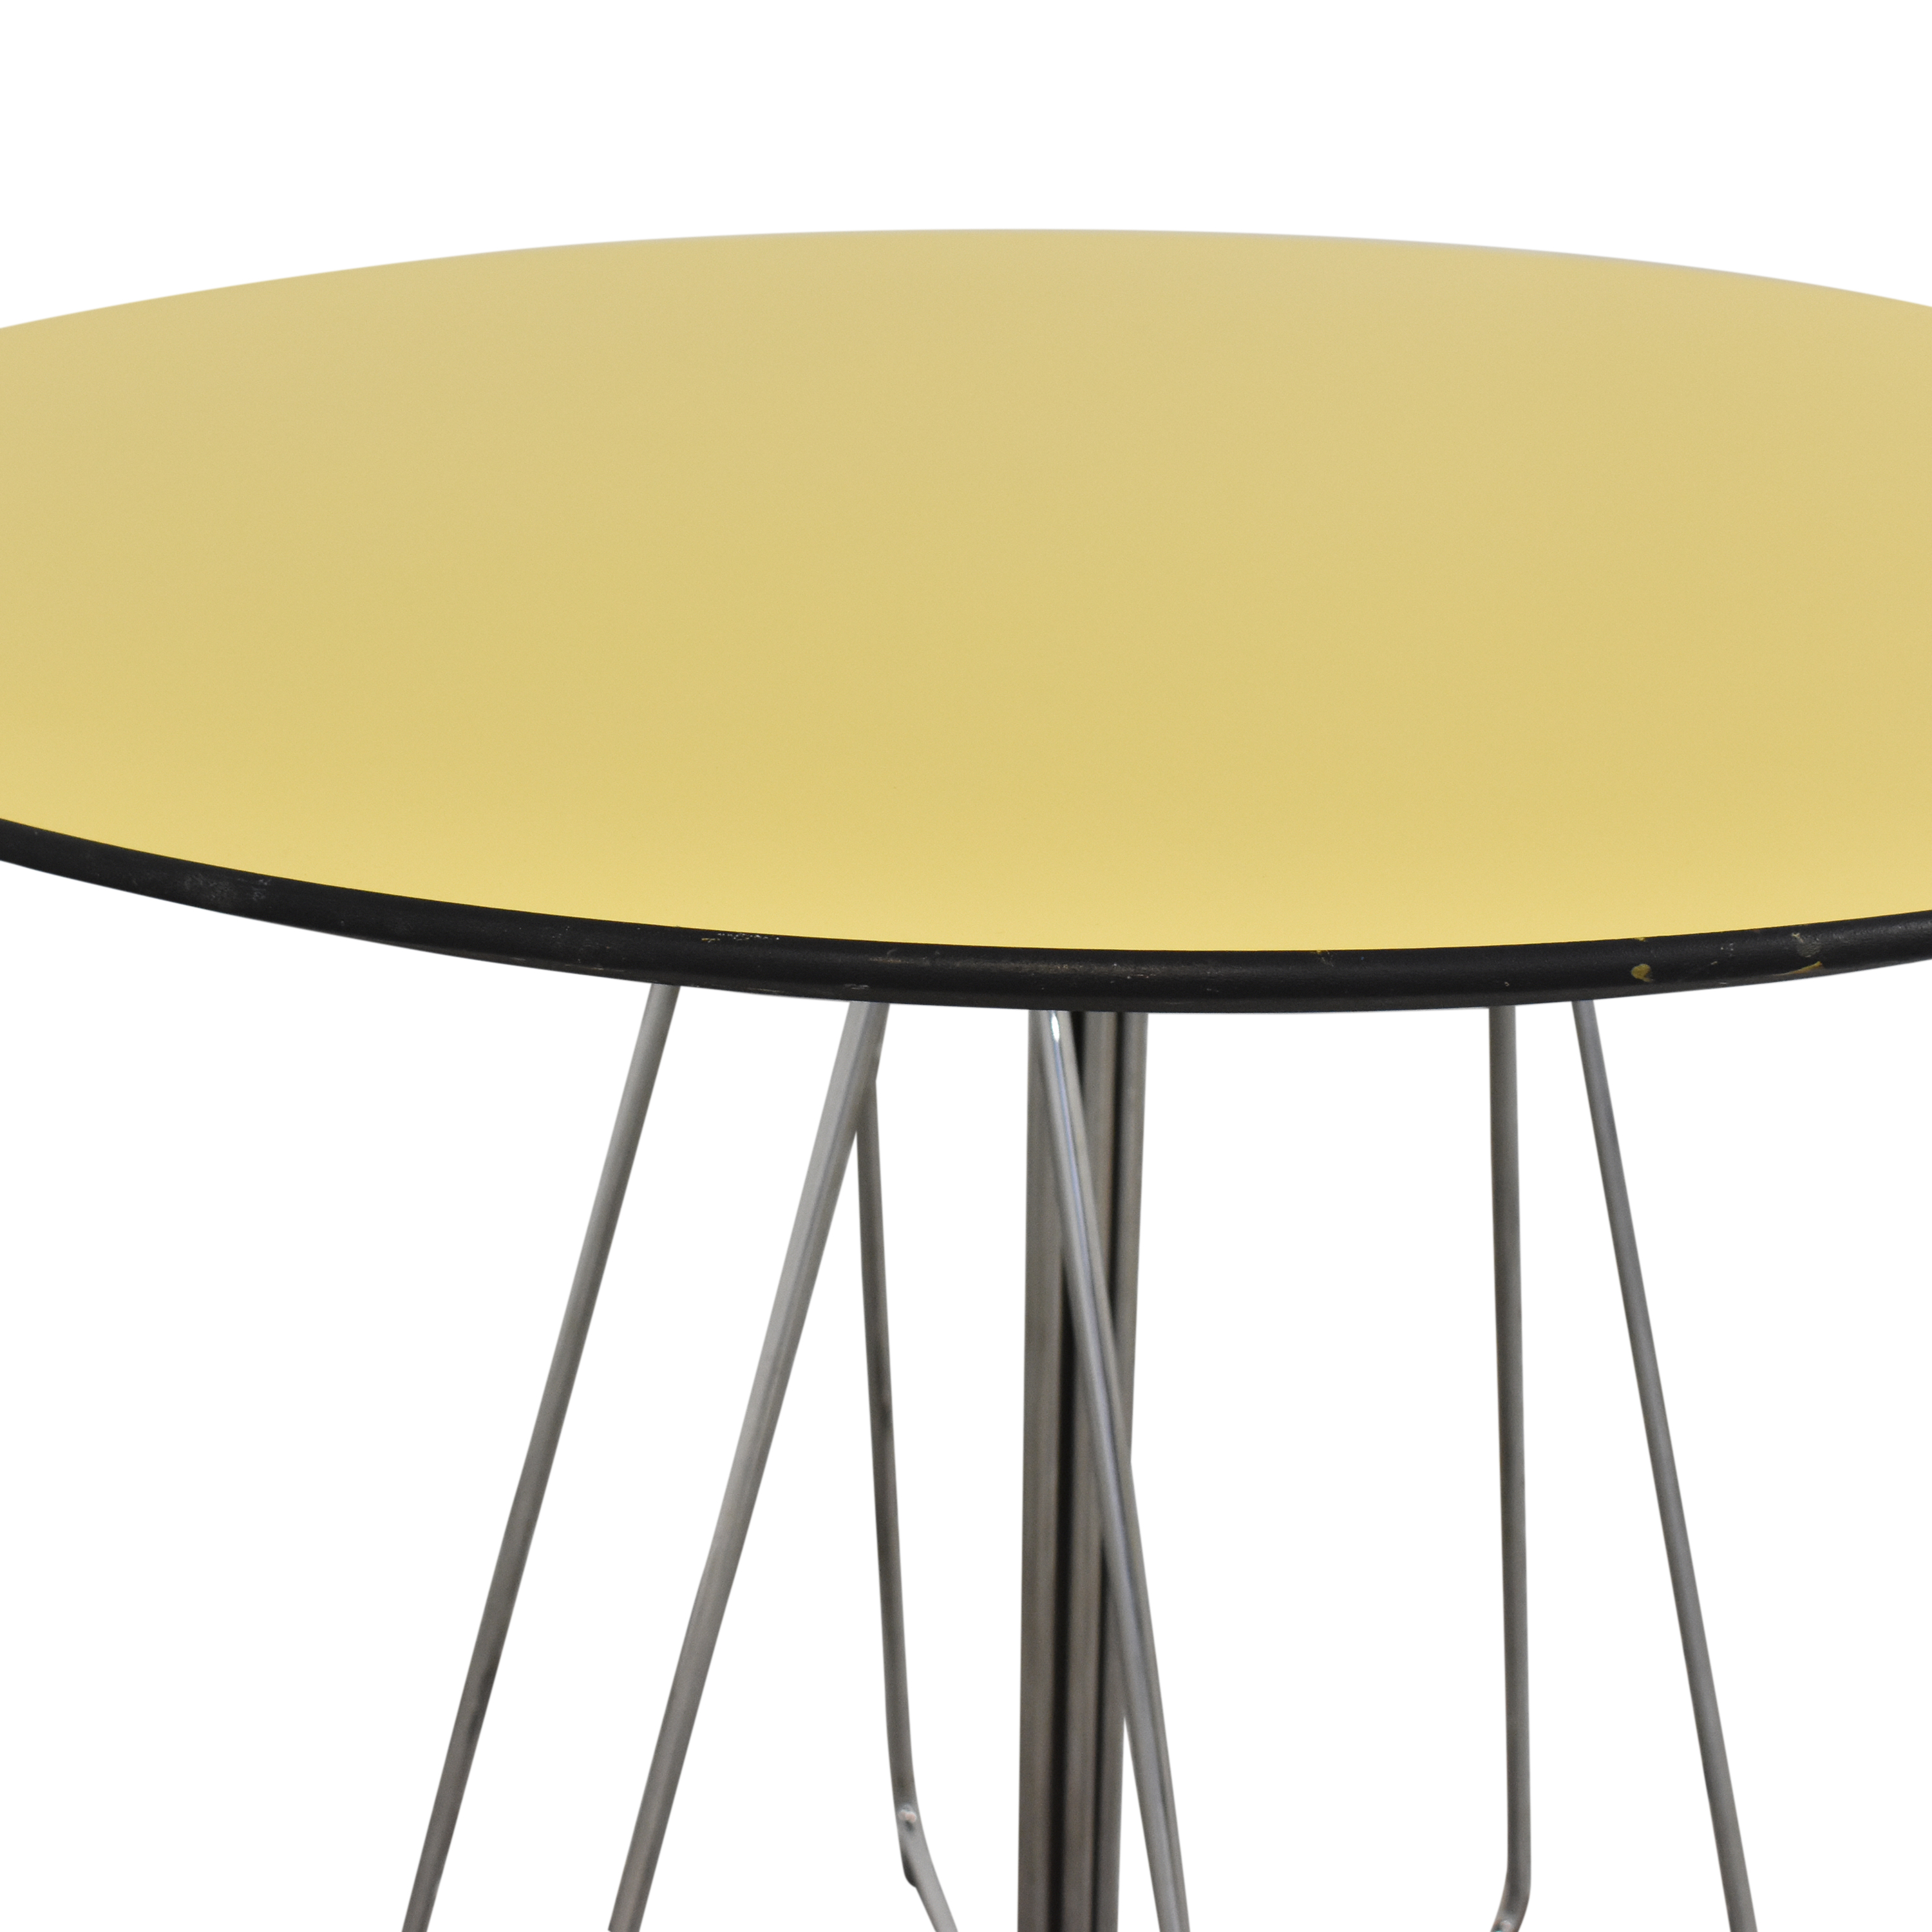 Knoll Knoll Vingelli Designs Paperclip Table yellow and silver